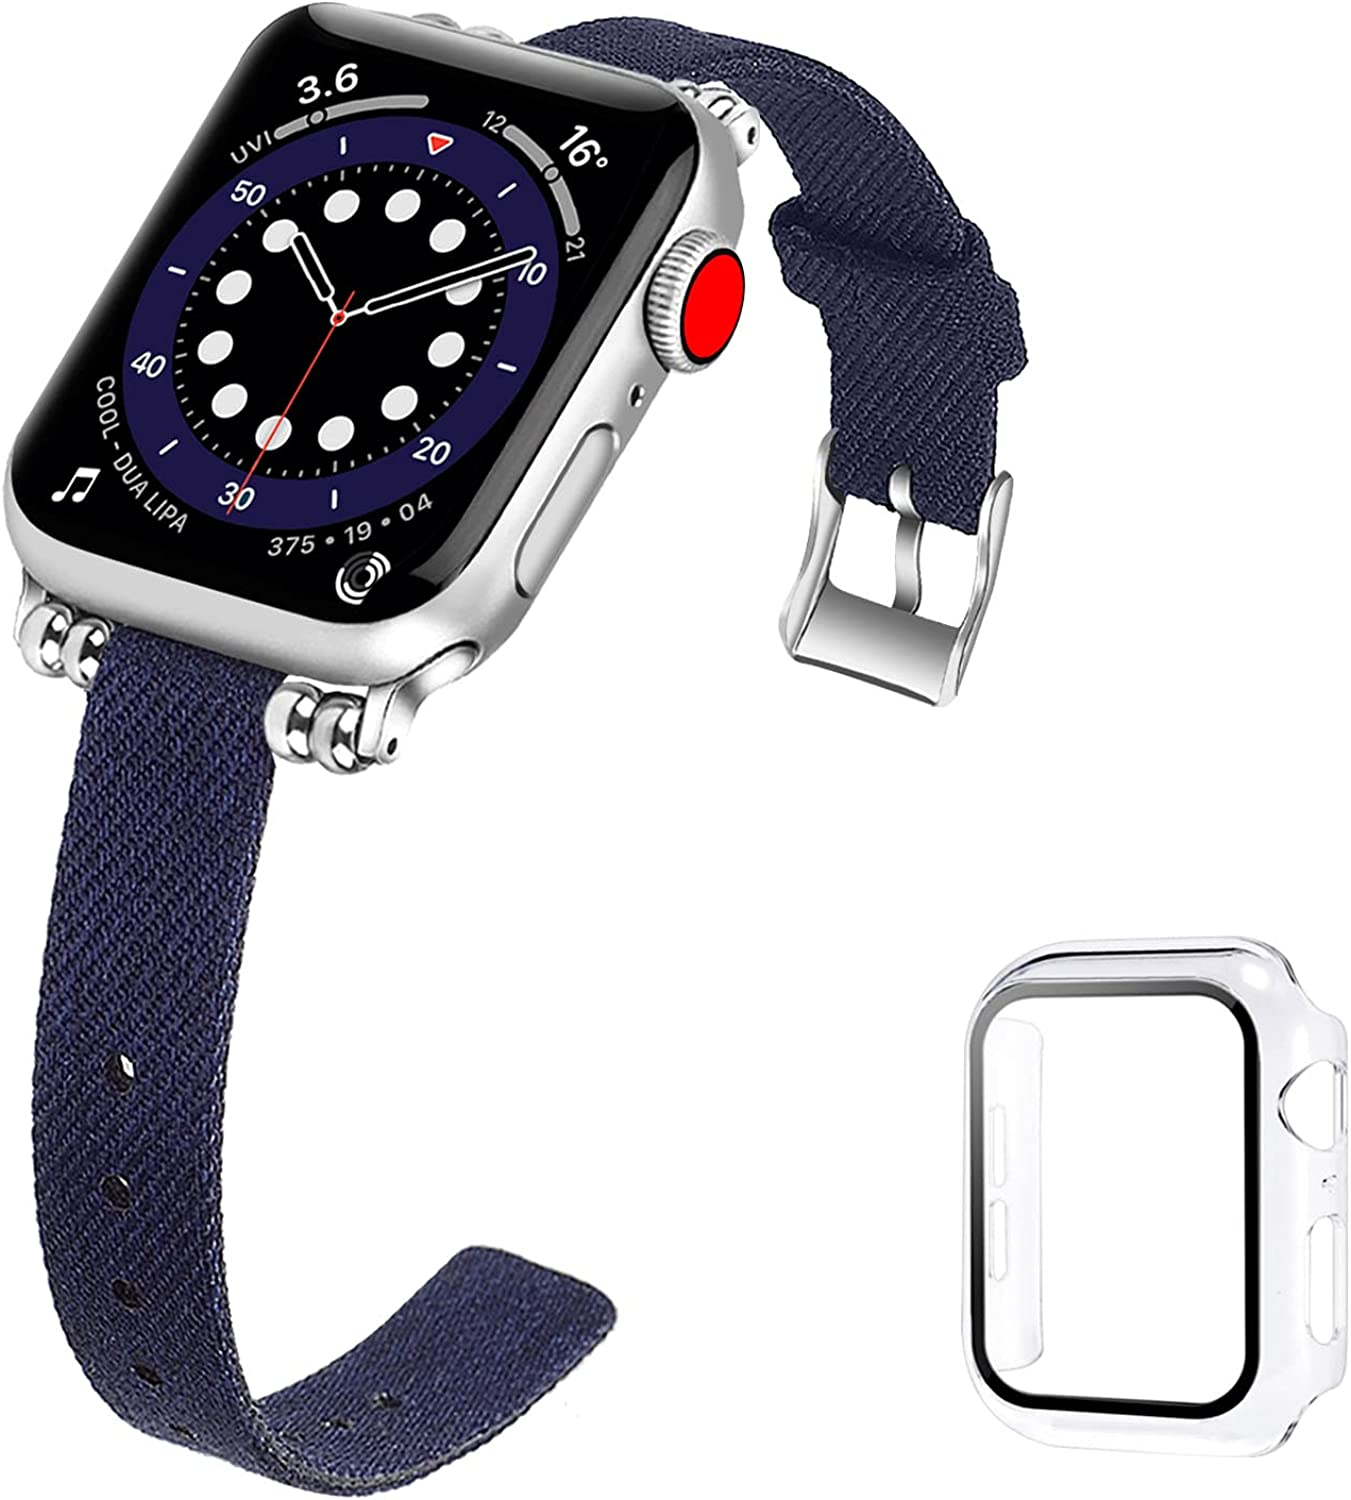 iDLEHANDS Compatible with Apple Watch Band 38mm 40mm 42mm 44mm, Slim Fabric Canvas Replacement Strap Compatible for iWatch Series 6/5/4/3/2/1/SE